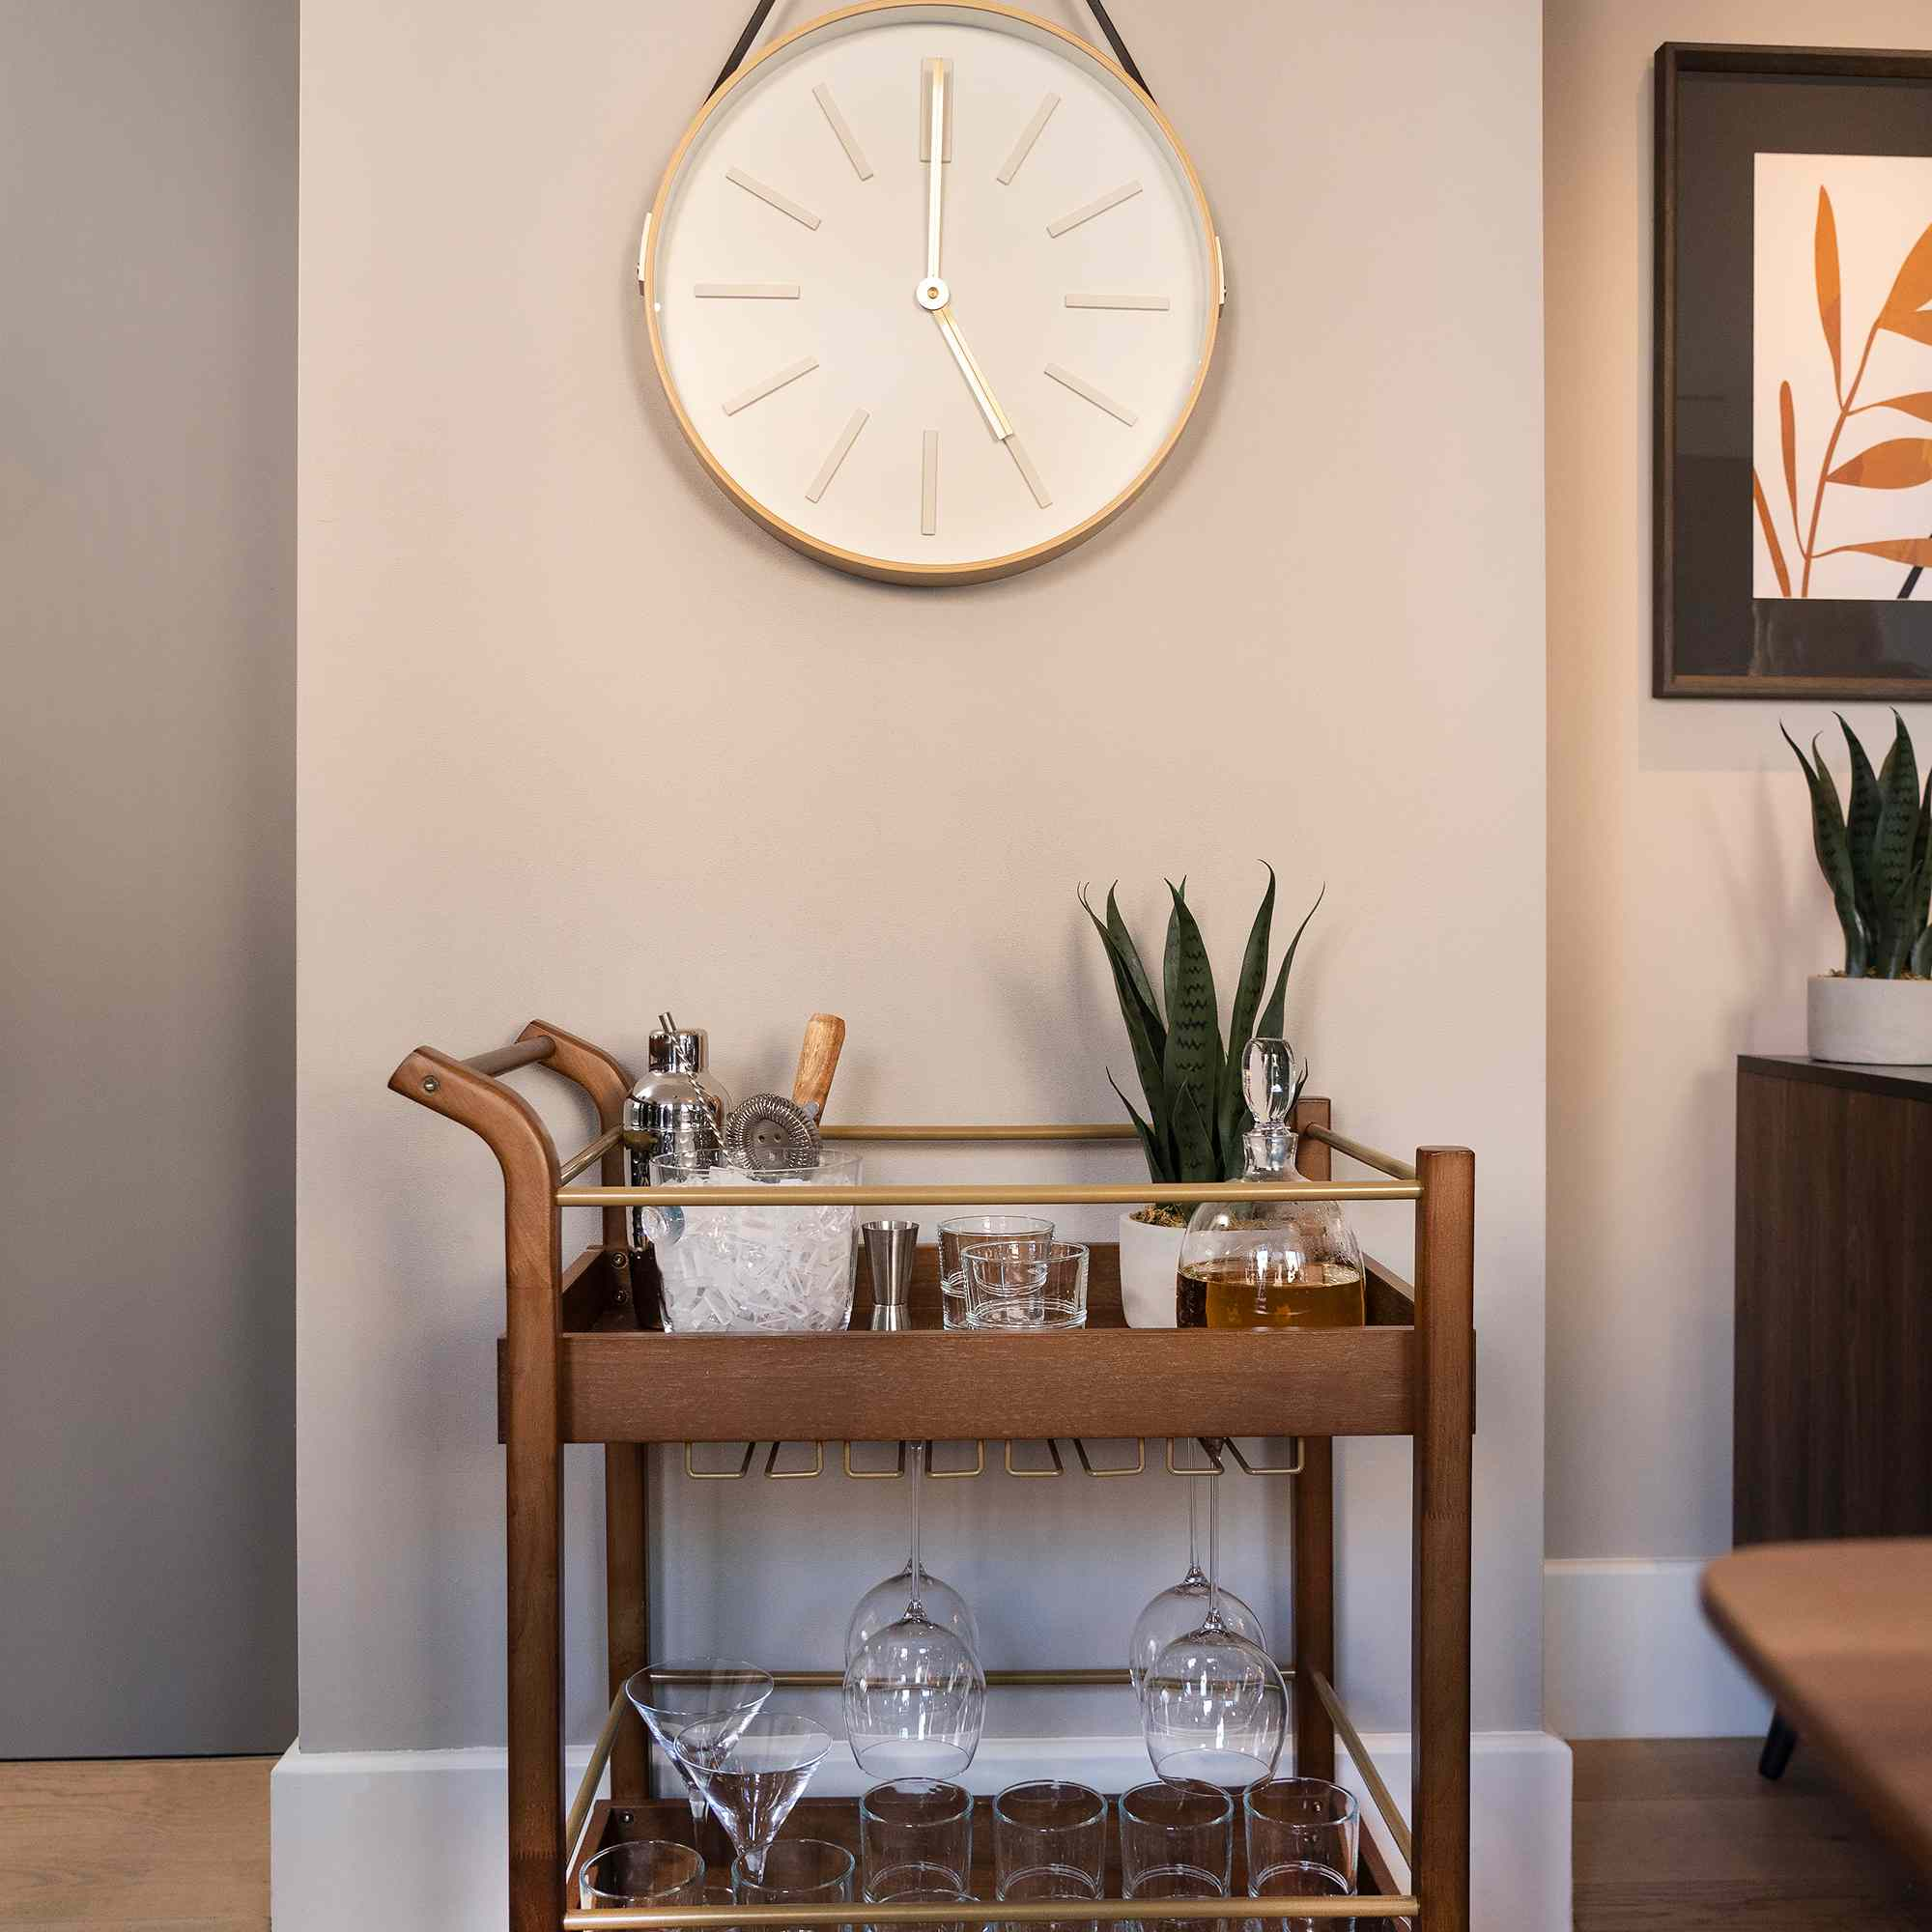 Clock and bar cart from Studio 3B by Bed Bath & Beyond